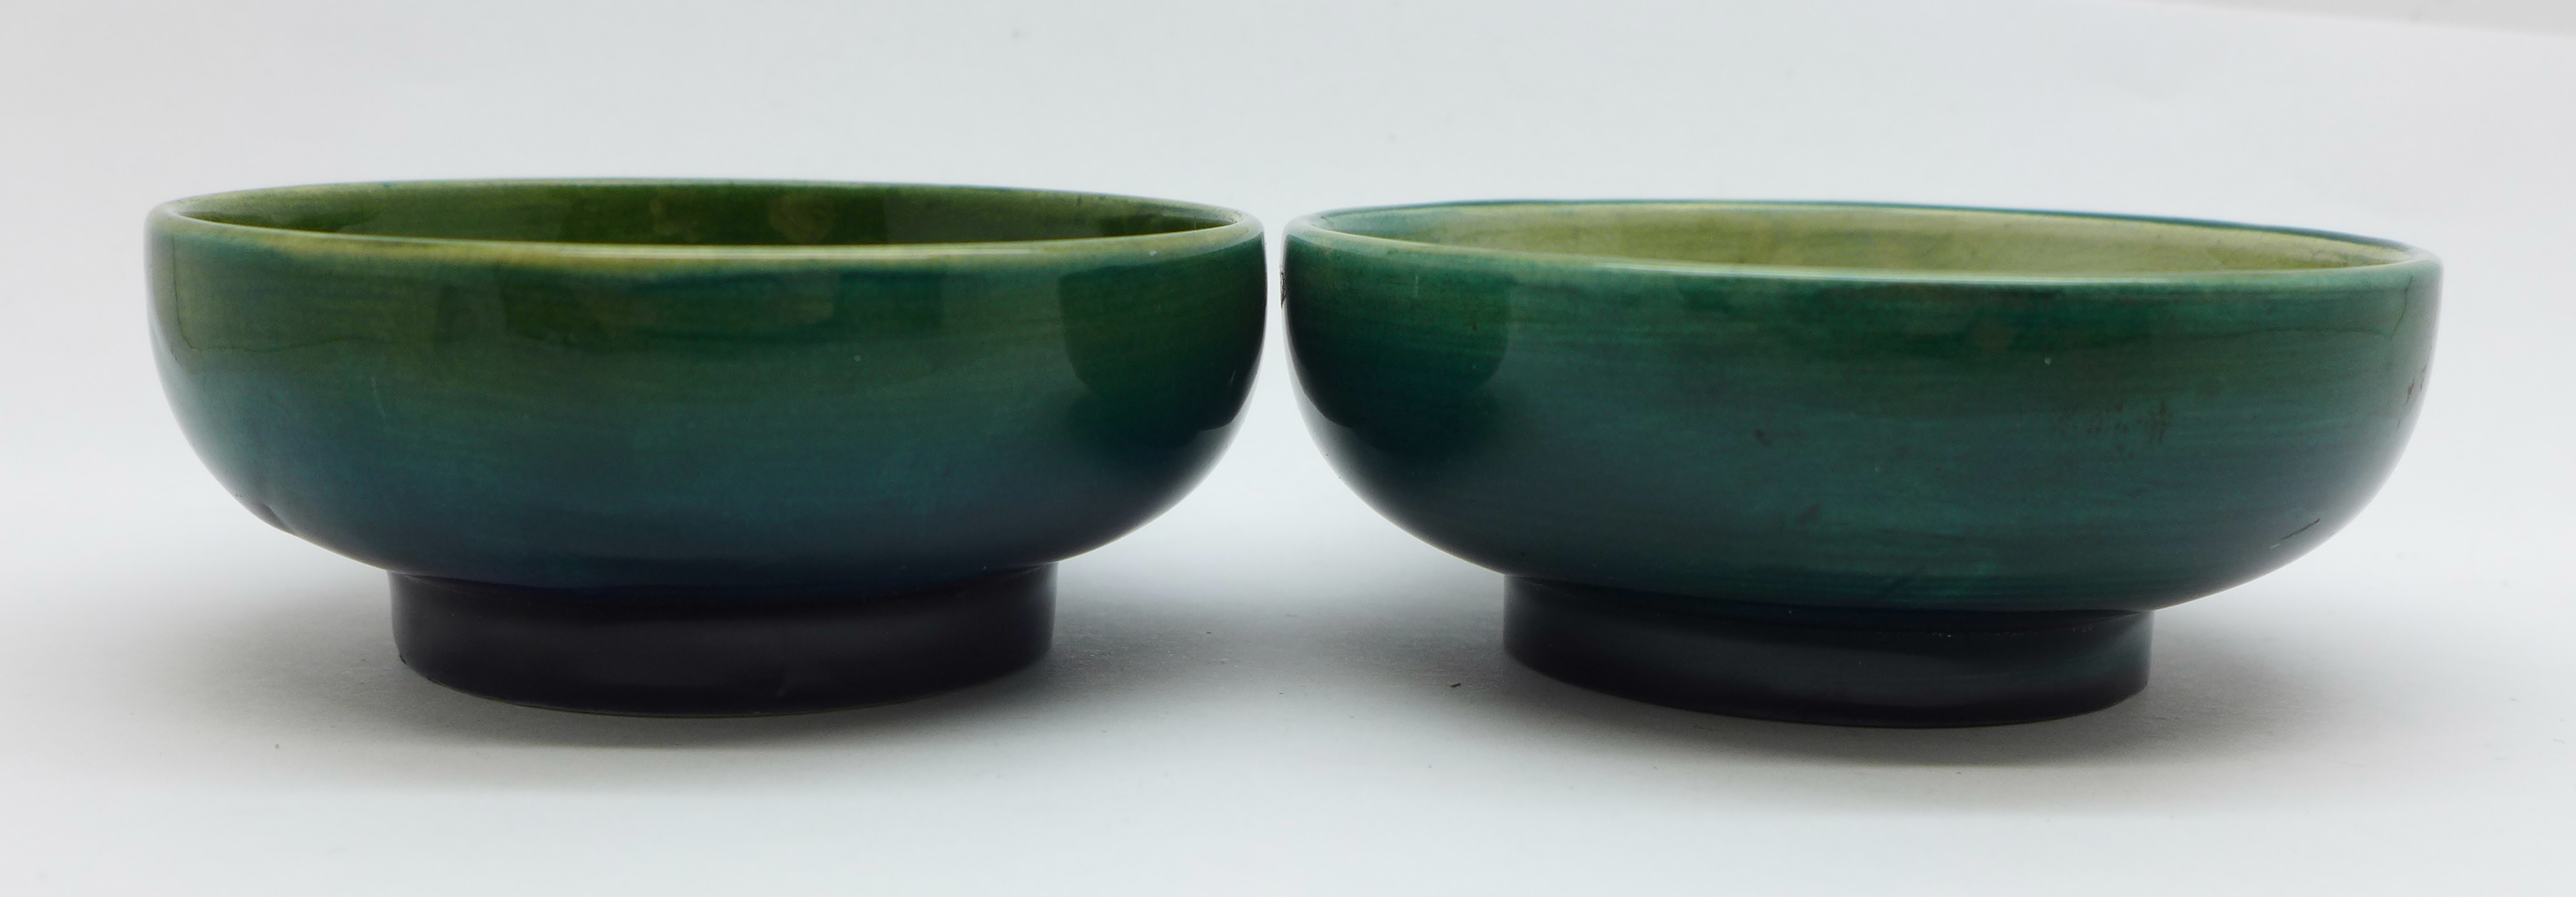 Two small Moorcroft bowls, Leaves and Fruit and orchid, 8cm diameter, (159,162) - Image 3 of 6